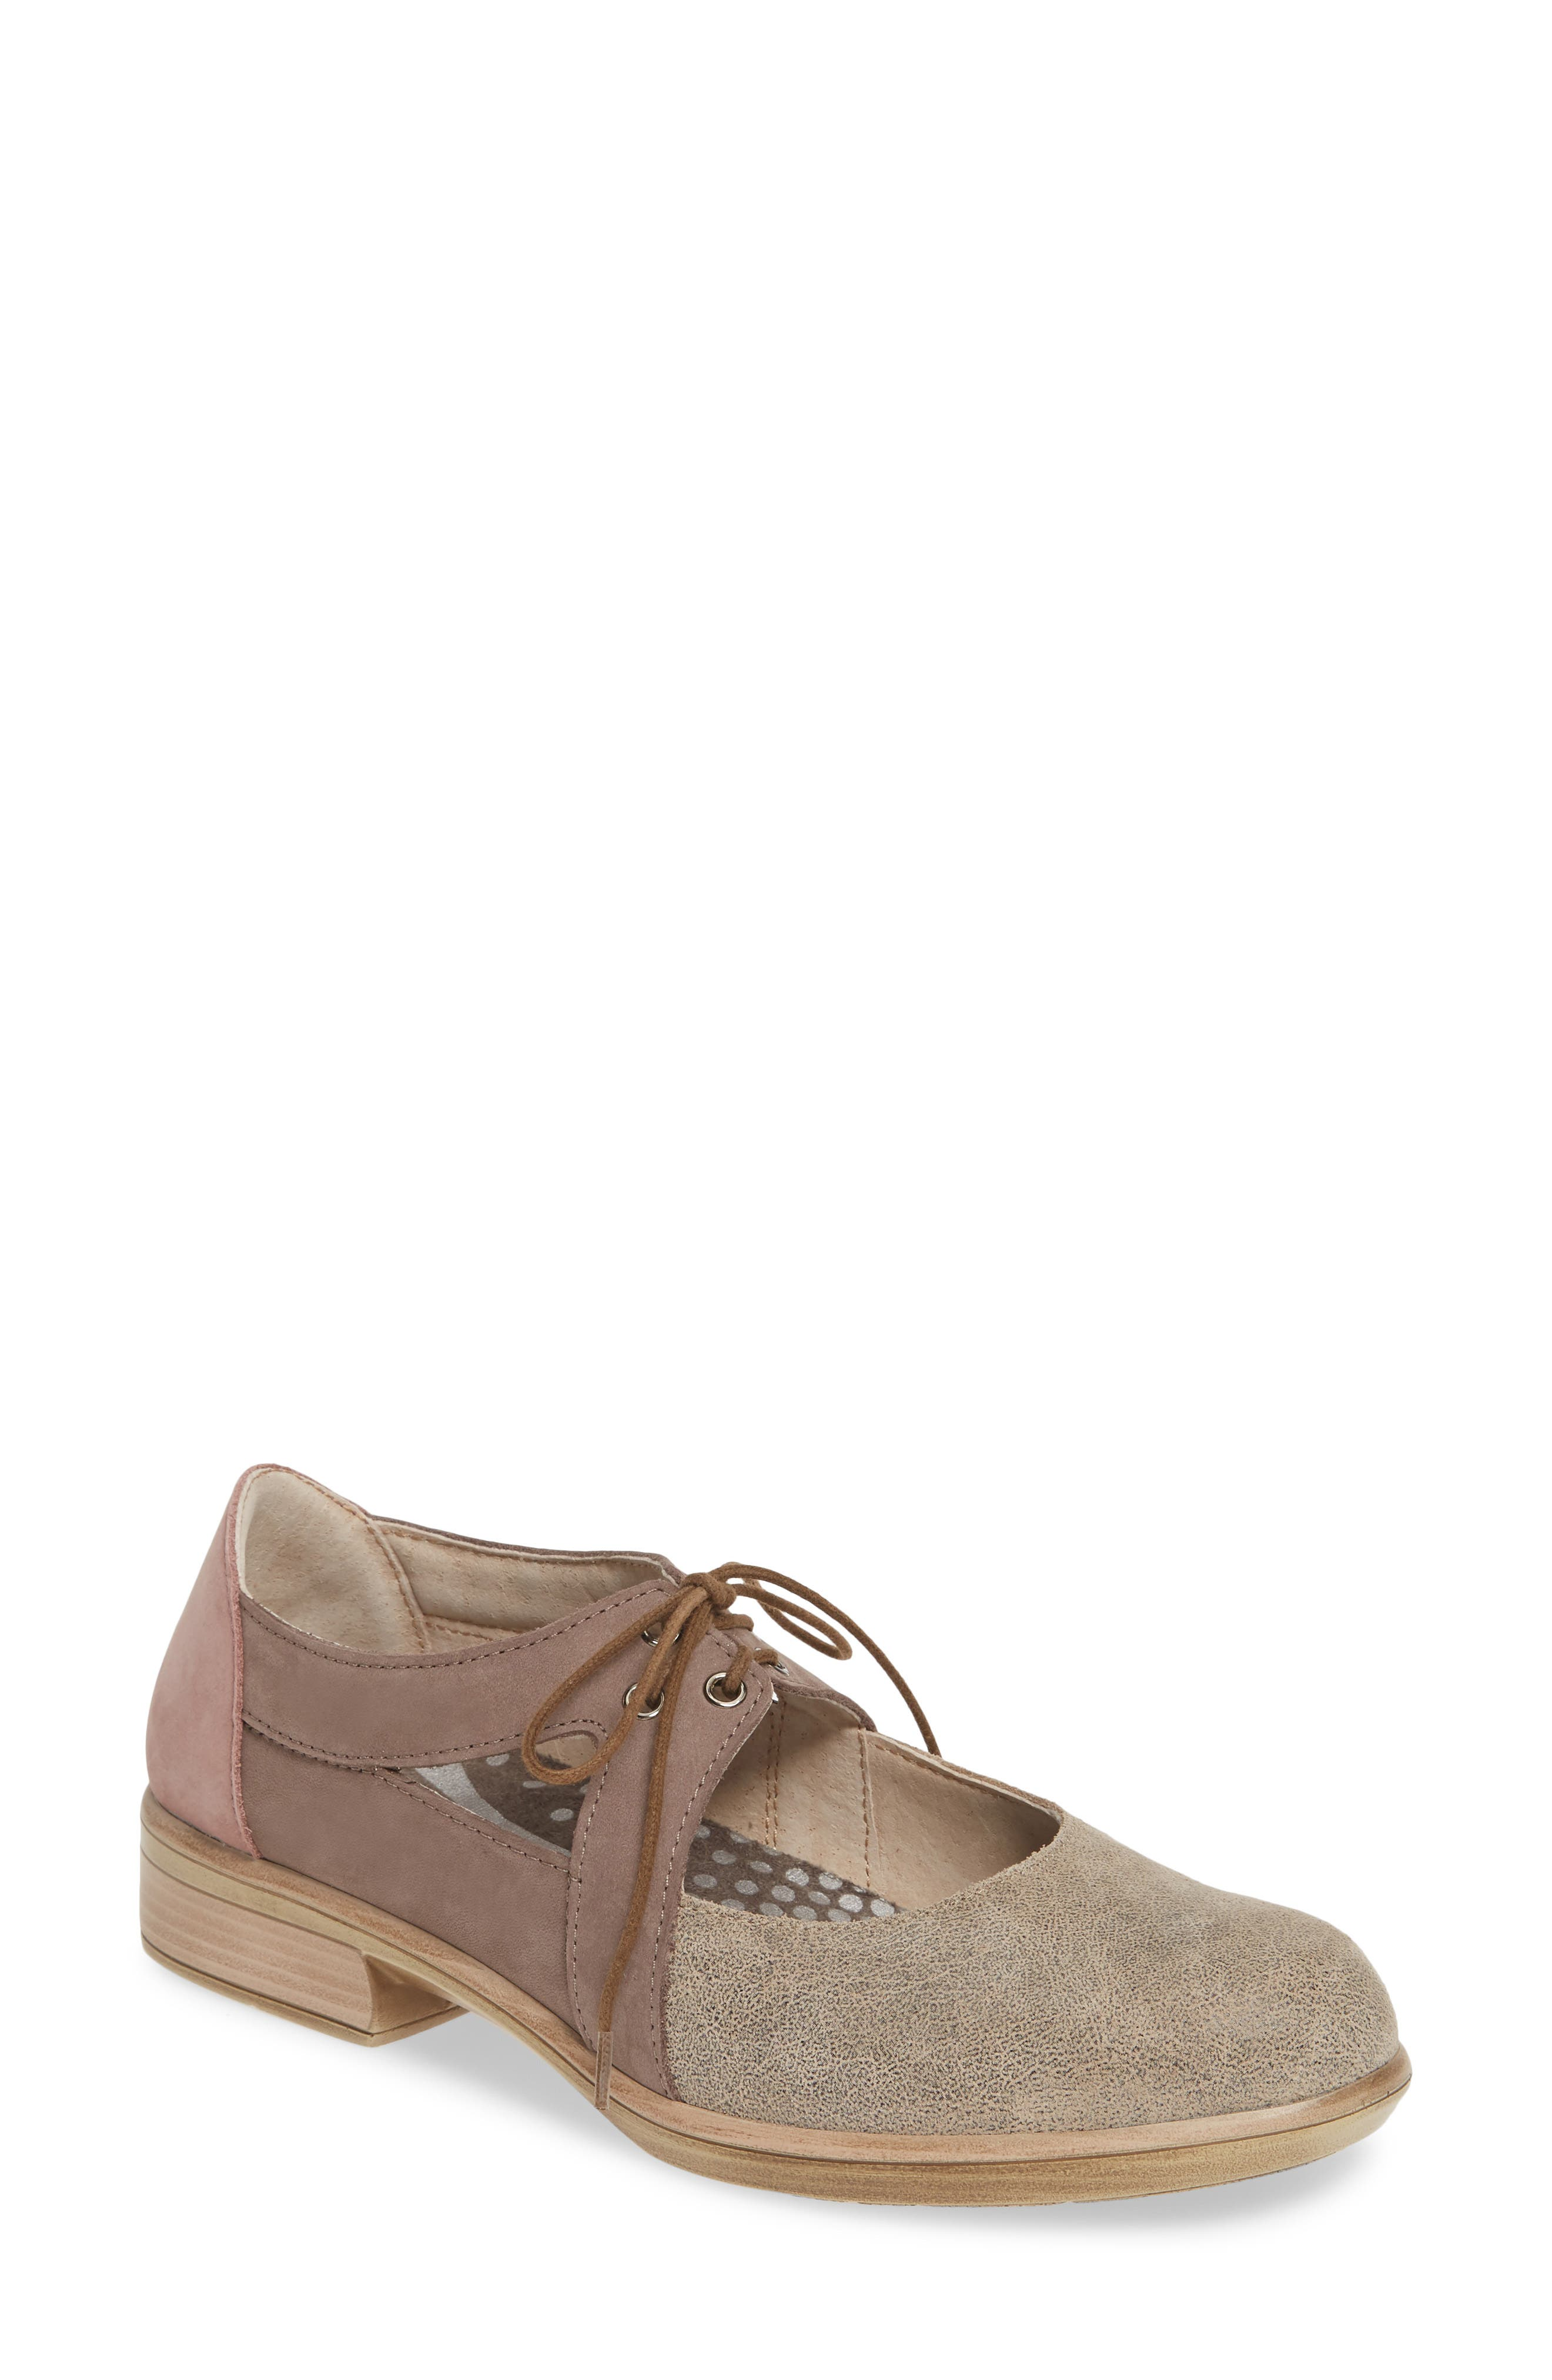 Naot Alisio Lace-Up Shoe, Beige